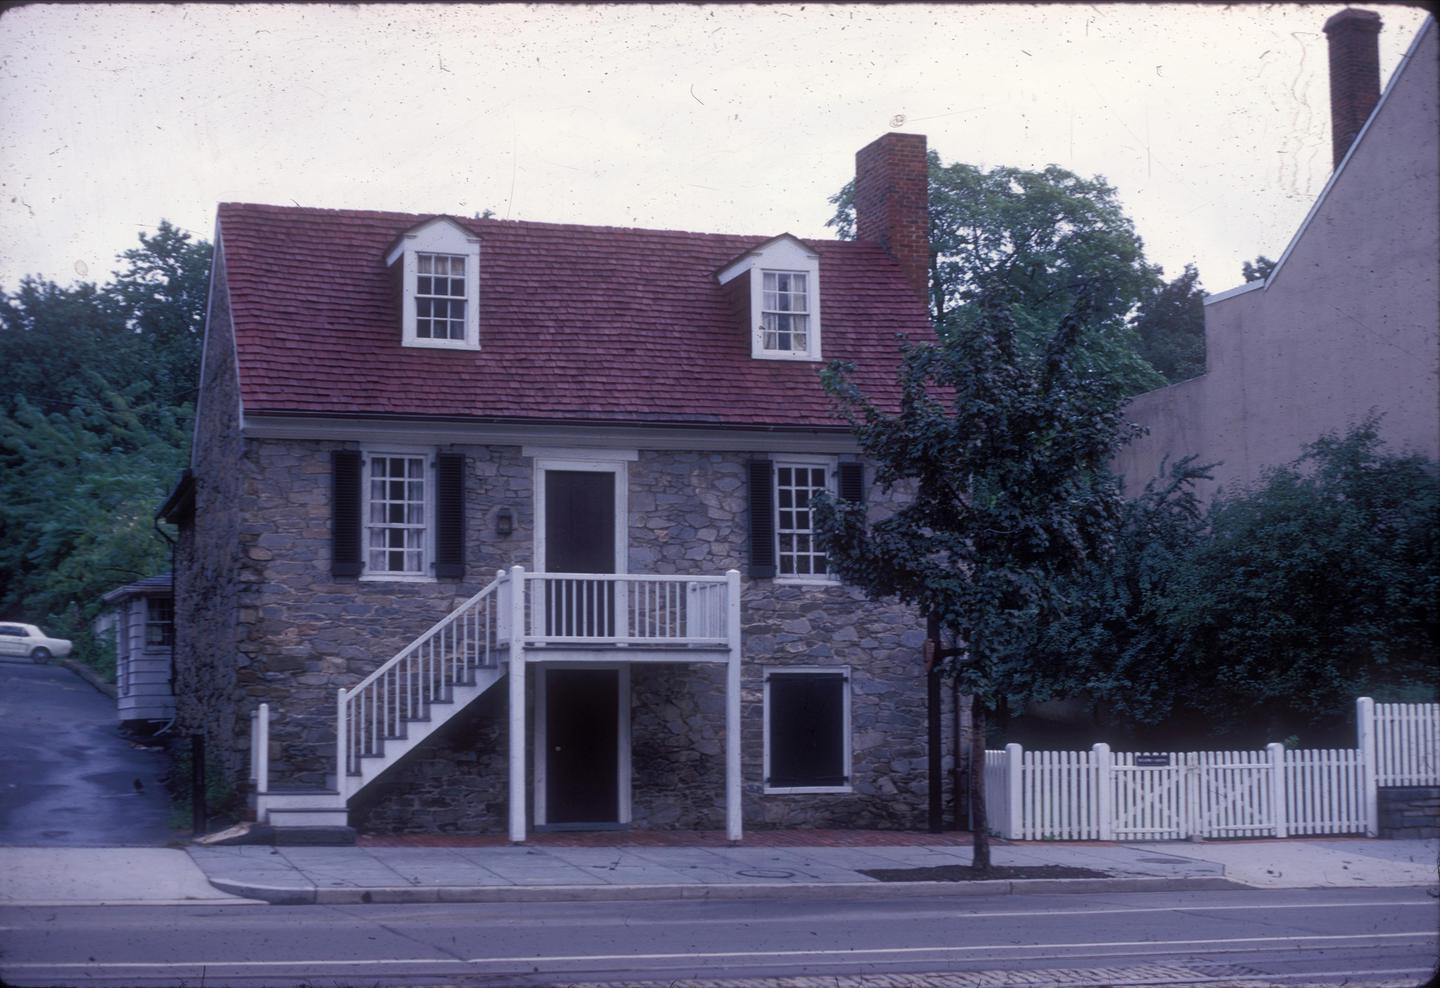 Old Stone HouseThe Old Stone House is the Oldest original home in the District of Columbia